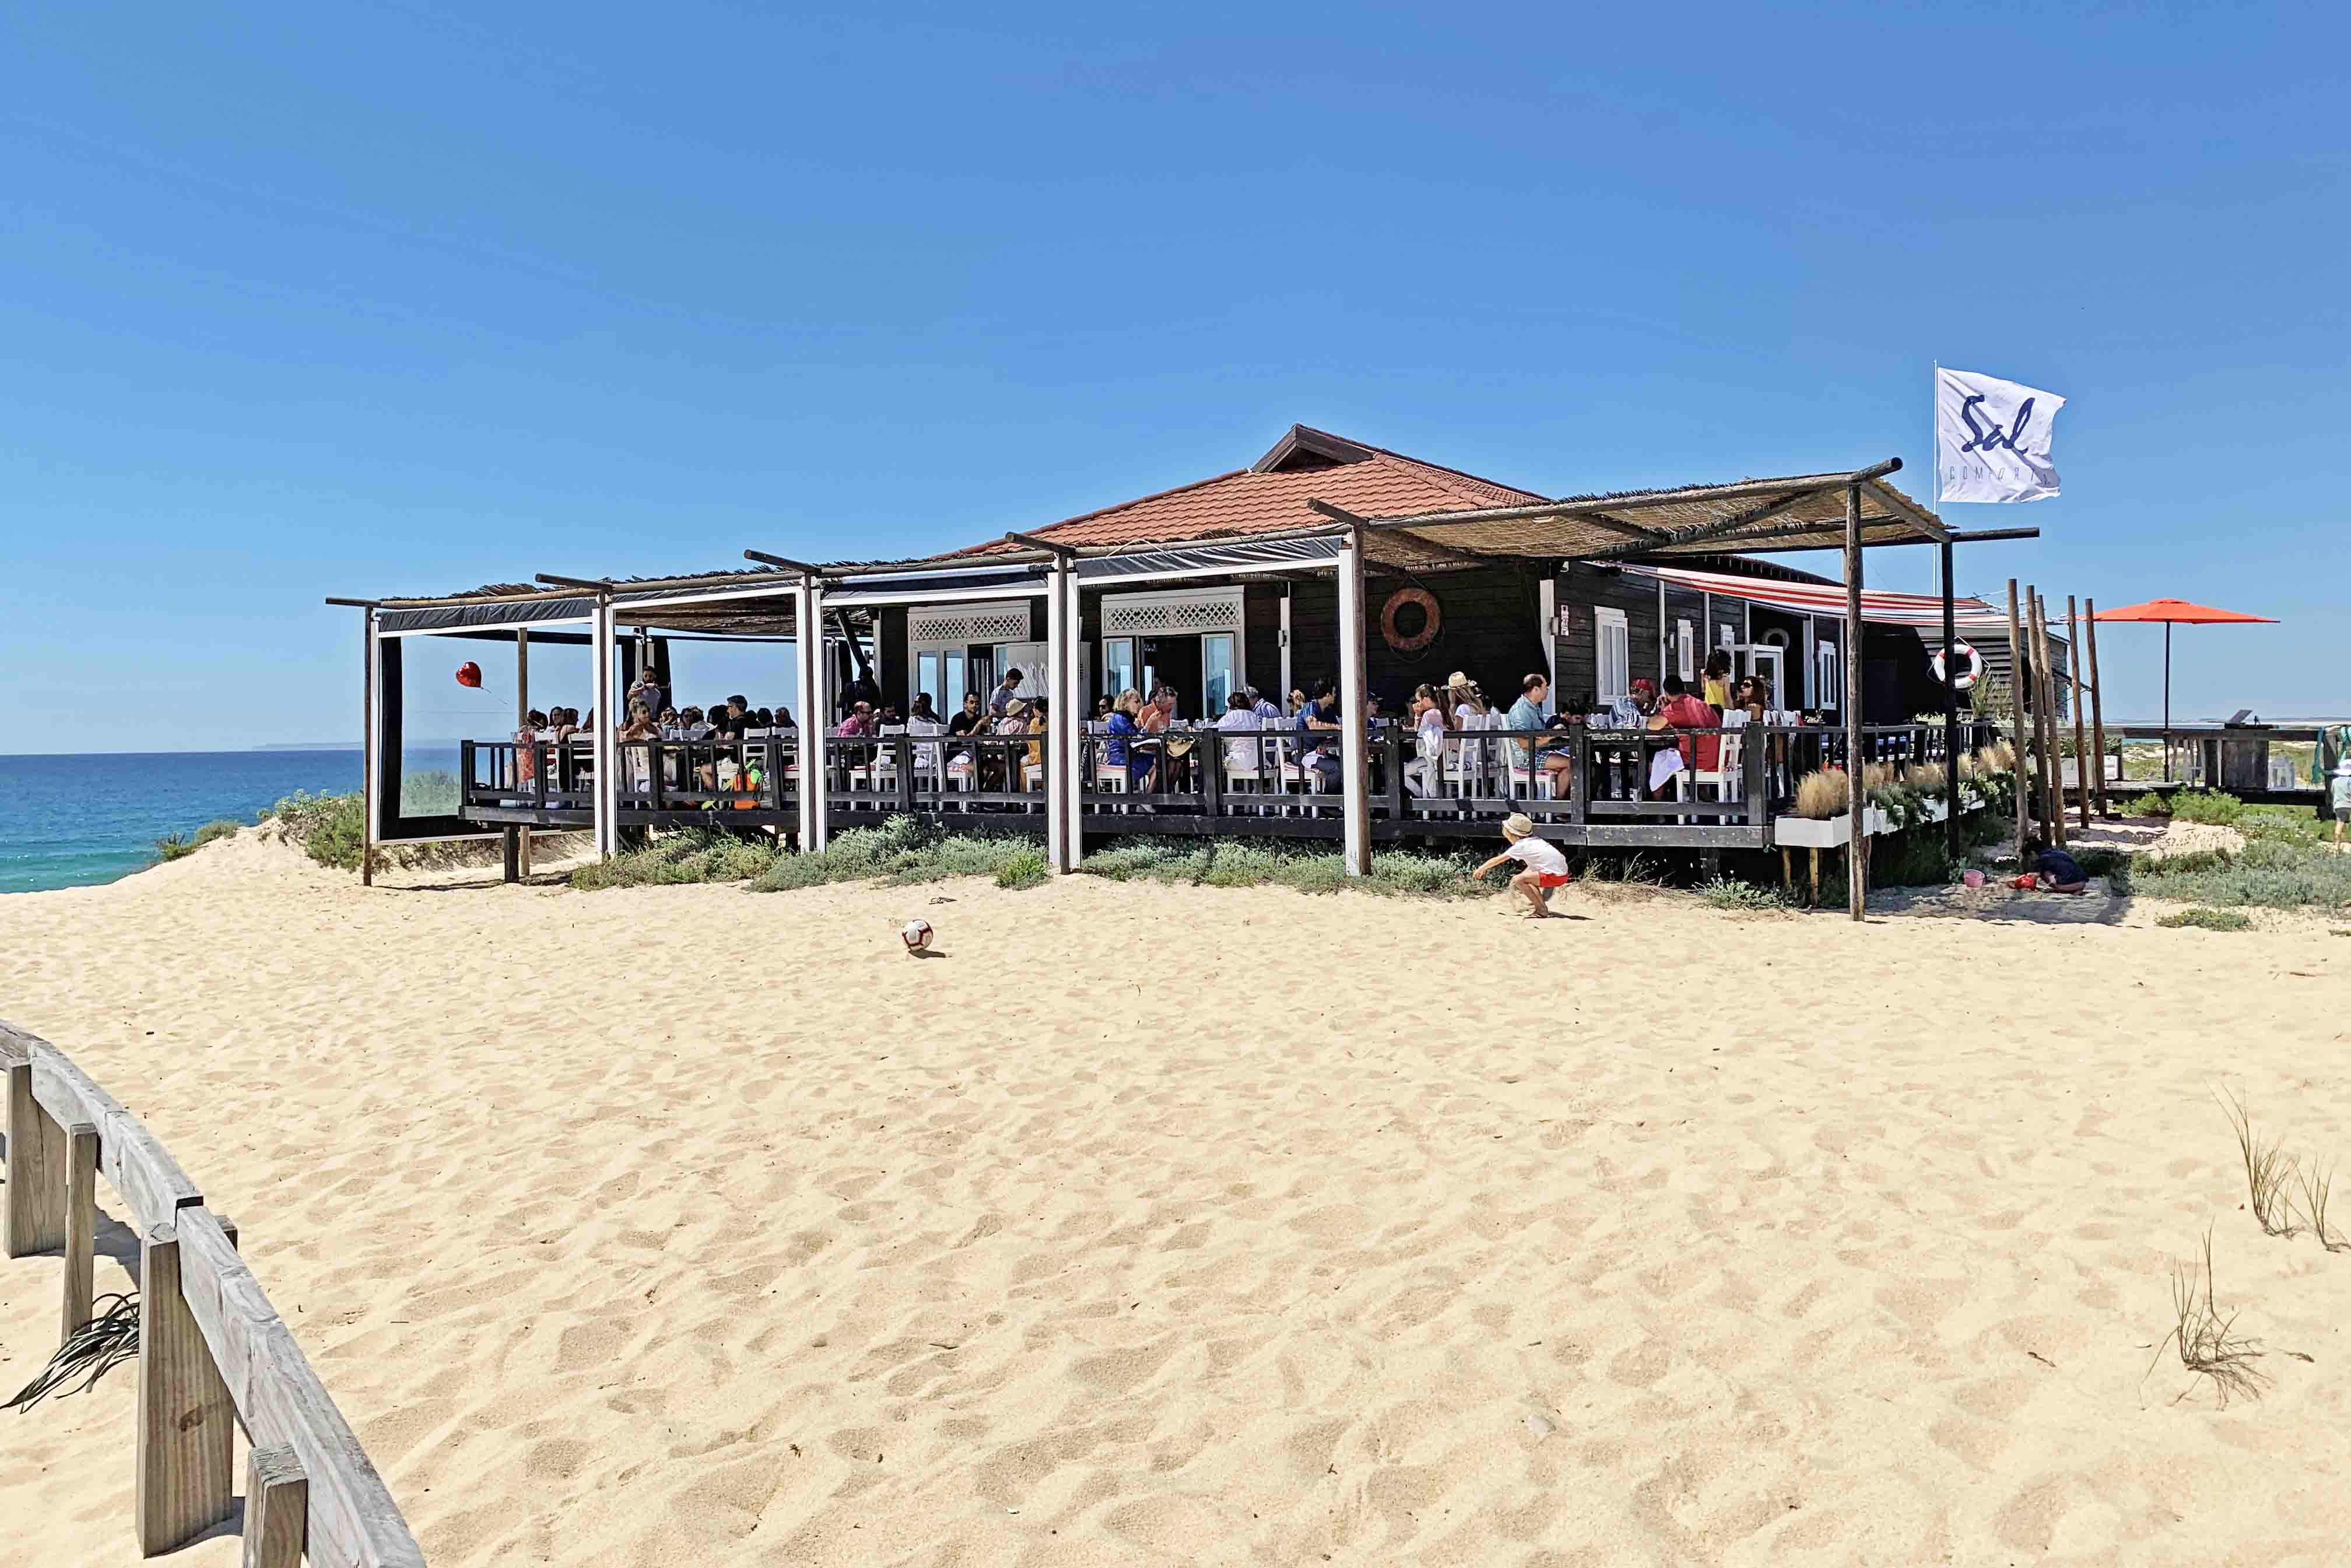 Restaurante Sal - Praia do Pego - Comporta - Portugal